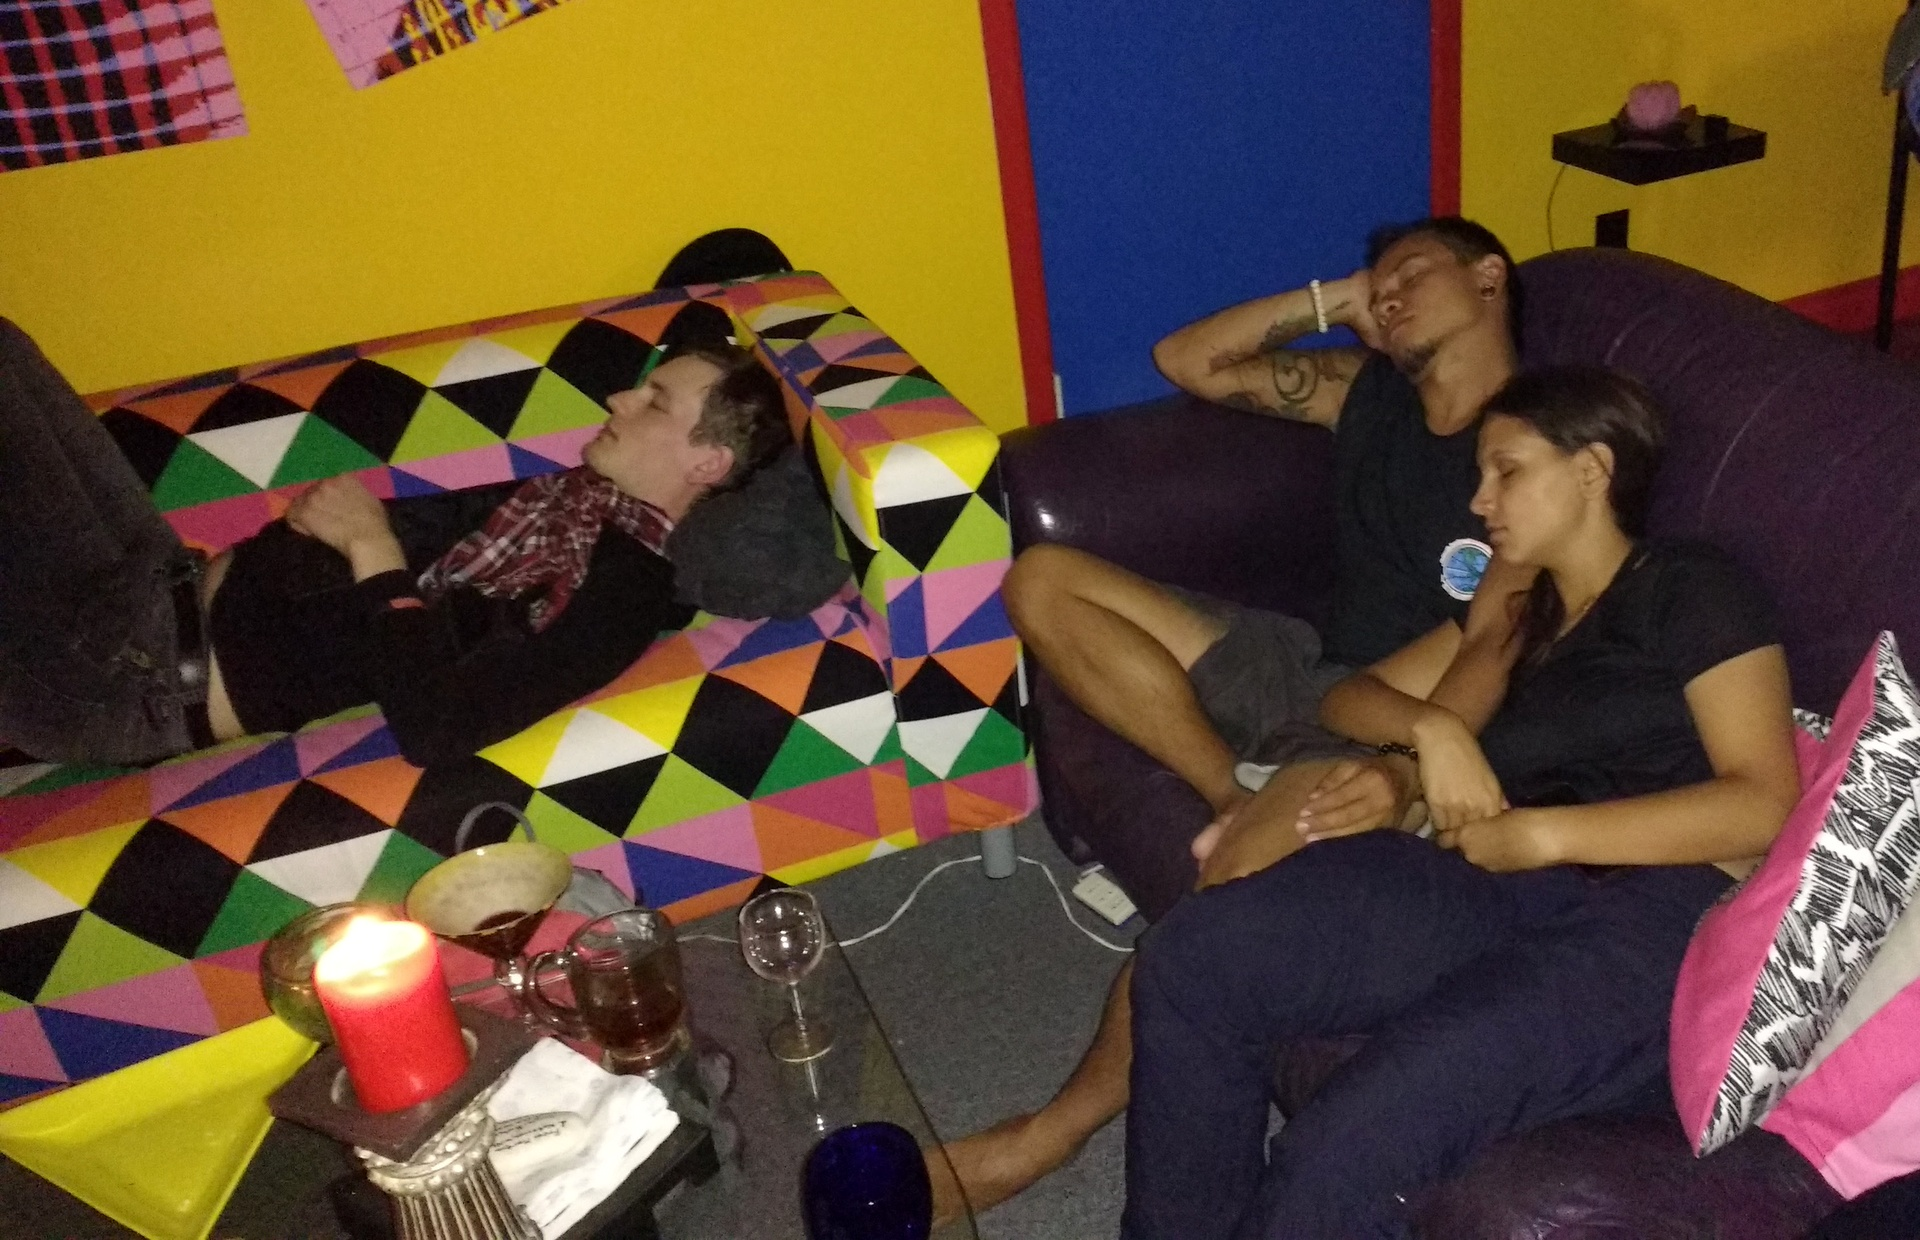 3 people asleep on couches